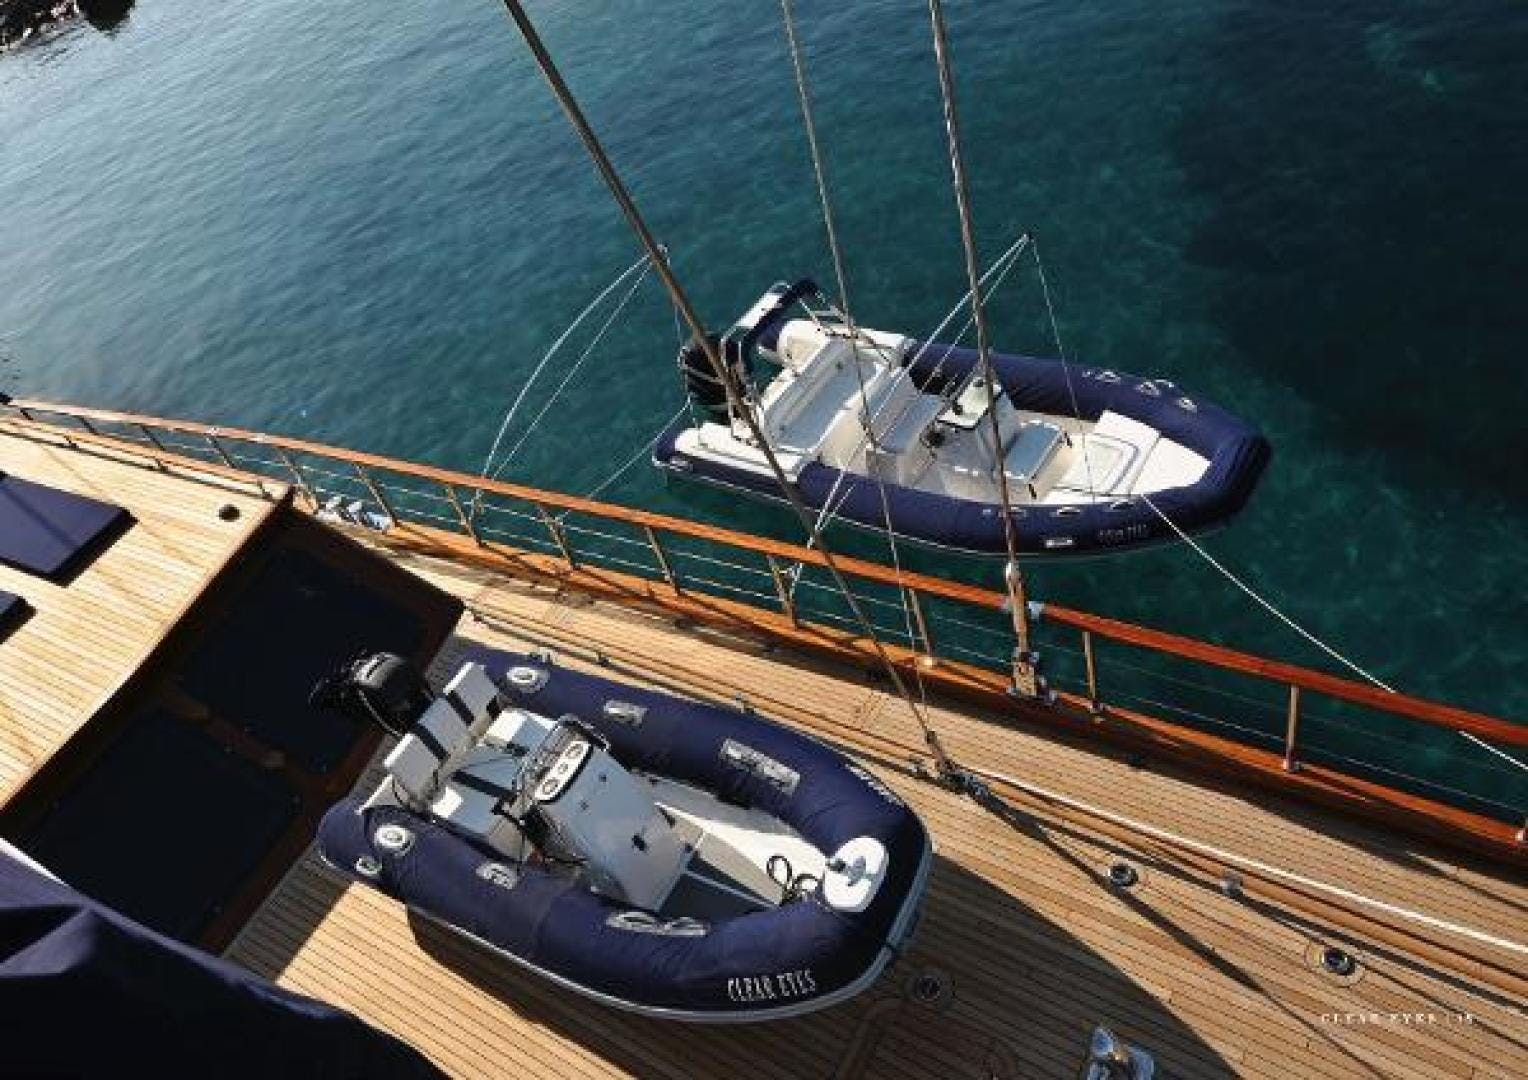 2010 Ketch 144' Pax Navi Yachts CLEAR EYES | Picture 2 of 22